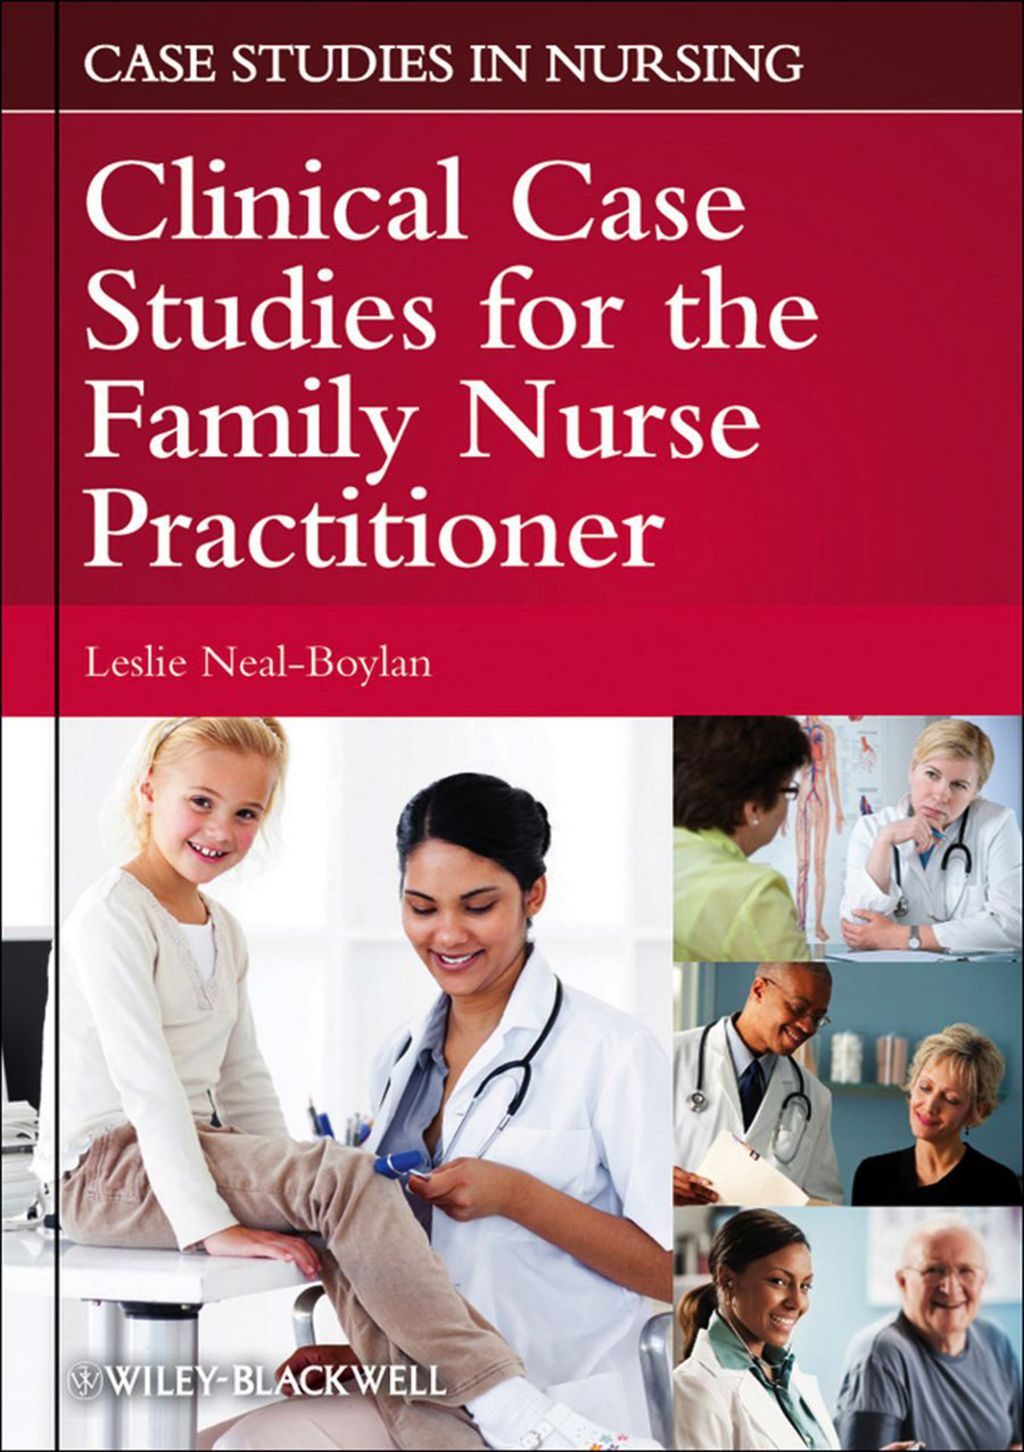 adam nursing care study Nursing - booklist spring 2018 seniors essentials of managed care study the baccalaureate degree in nursing at adam's state university is accredited by the.